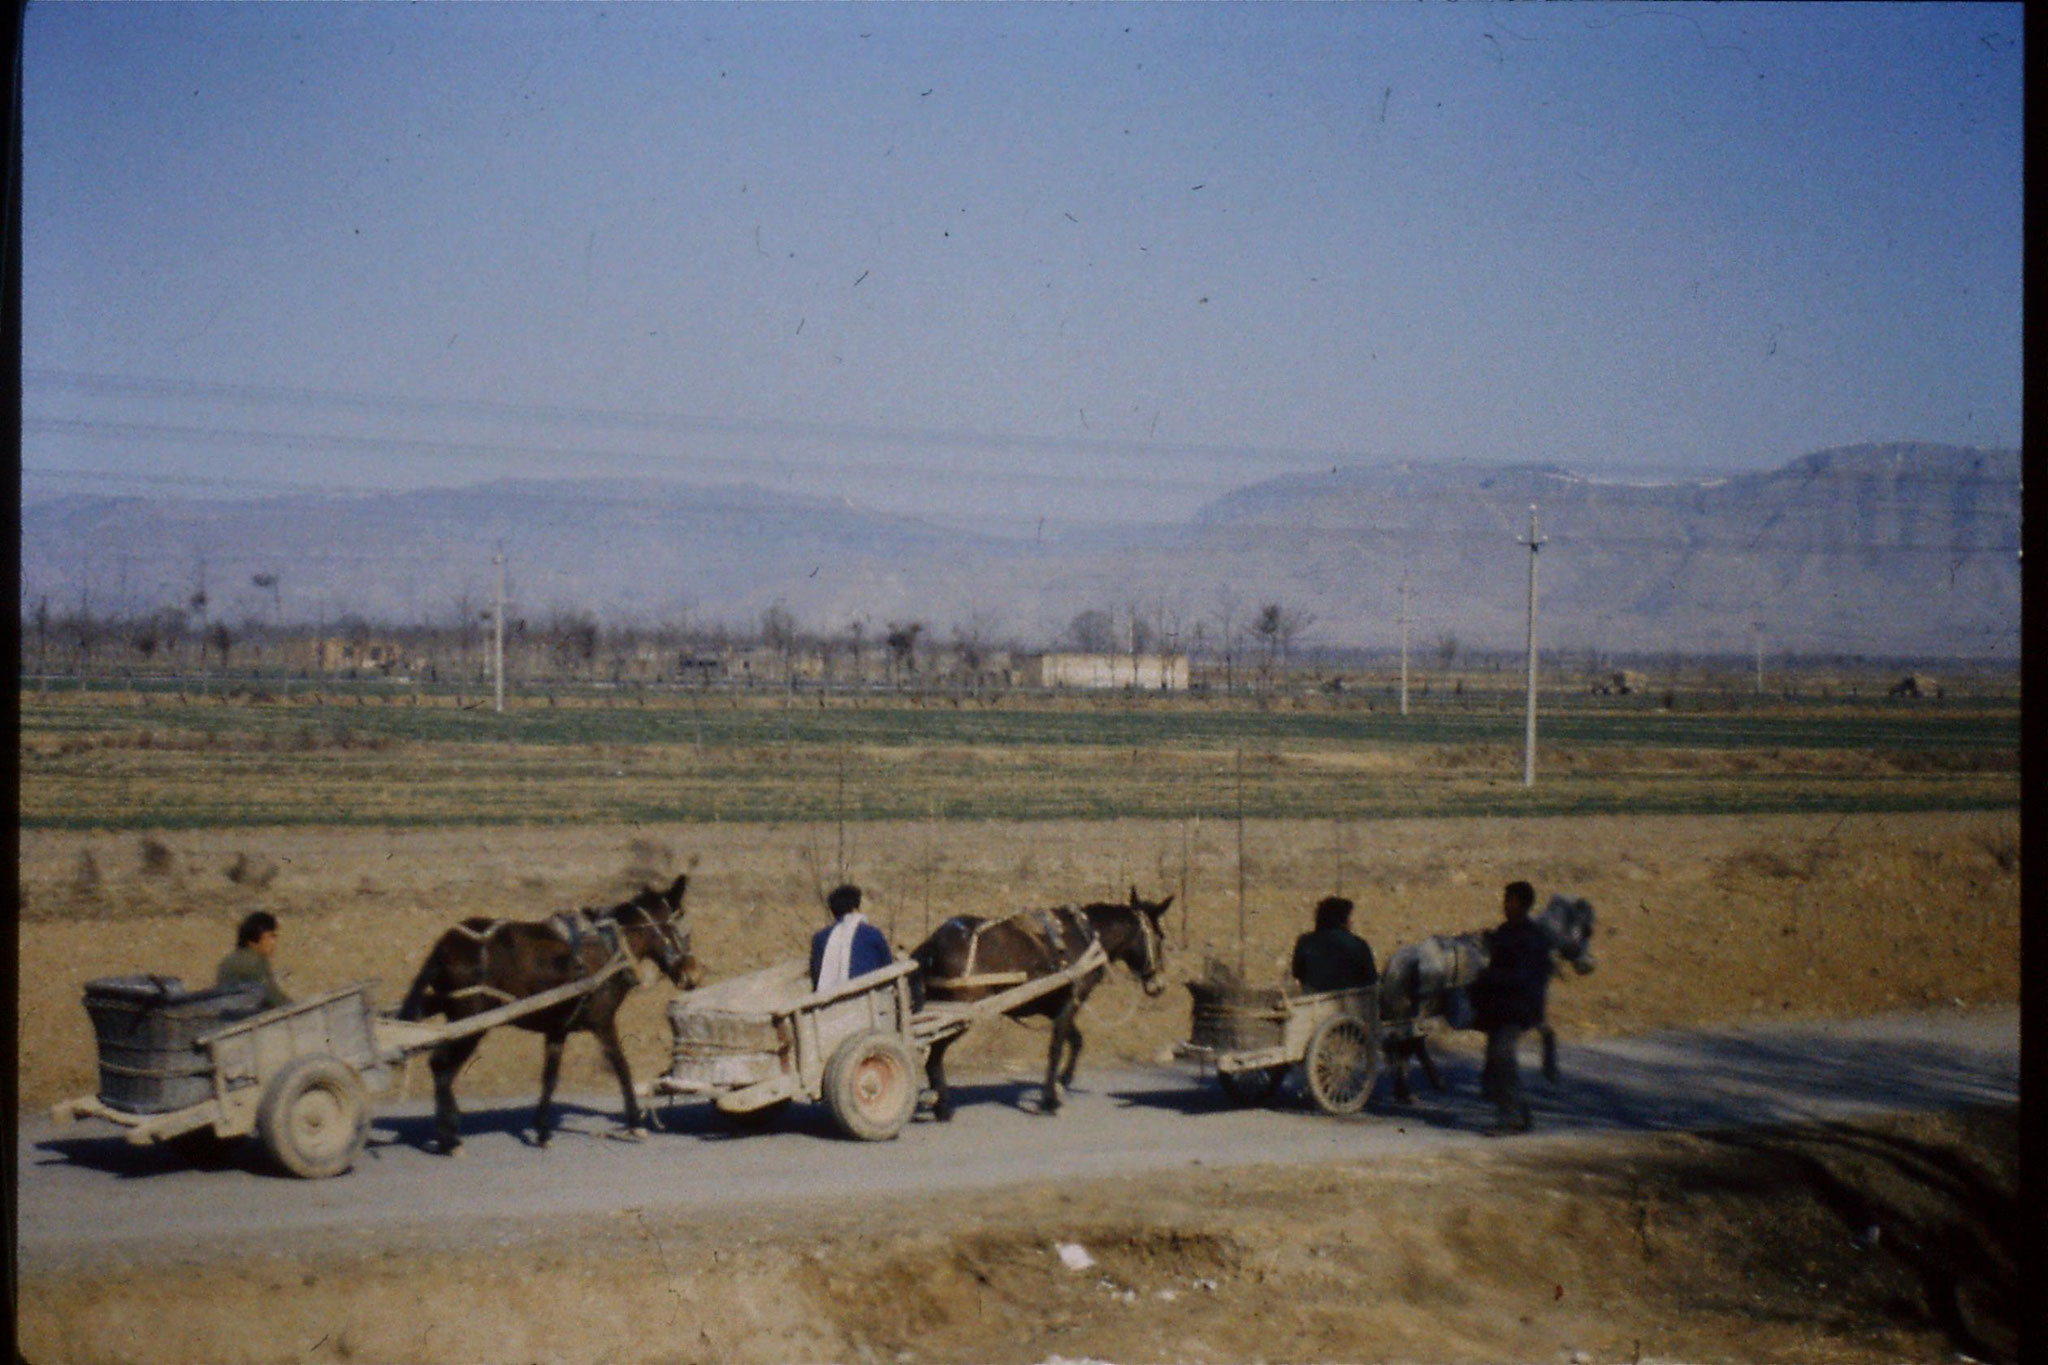 7/3/1989: 3: Journey Xian to Beijing, 0940